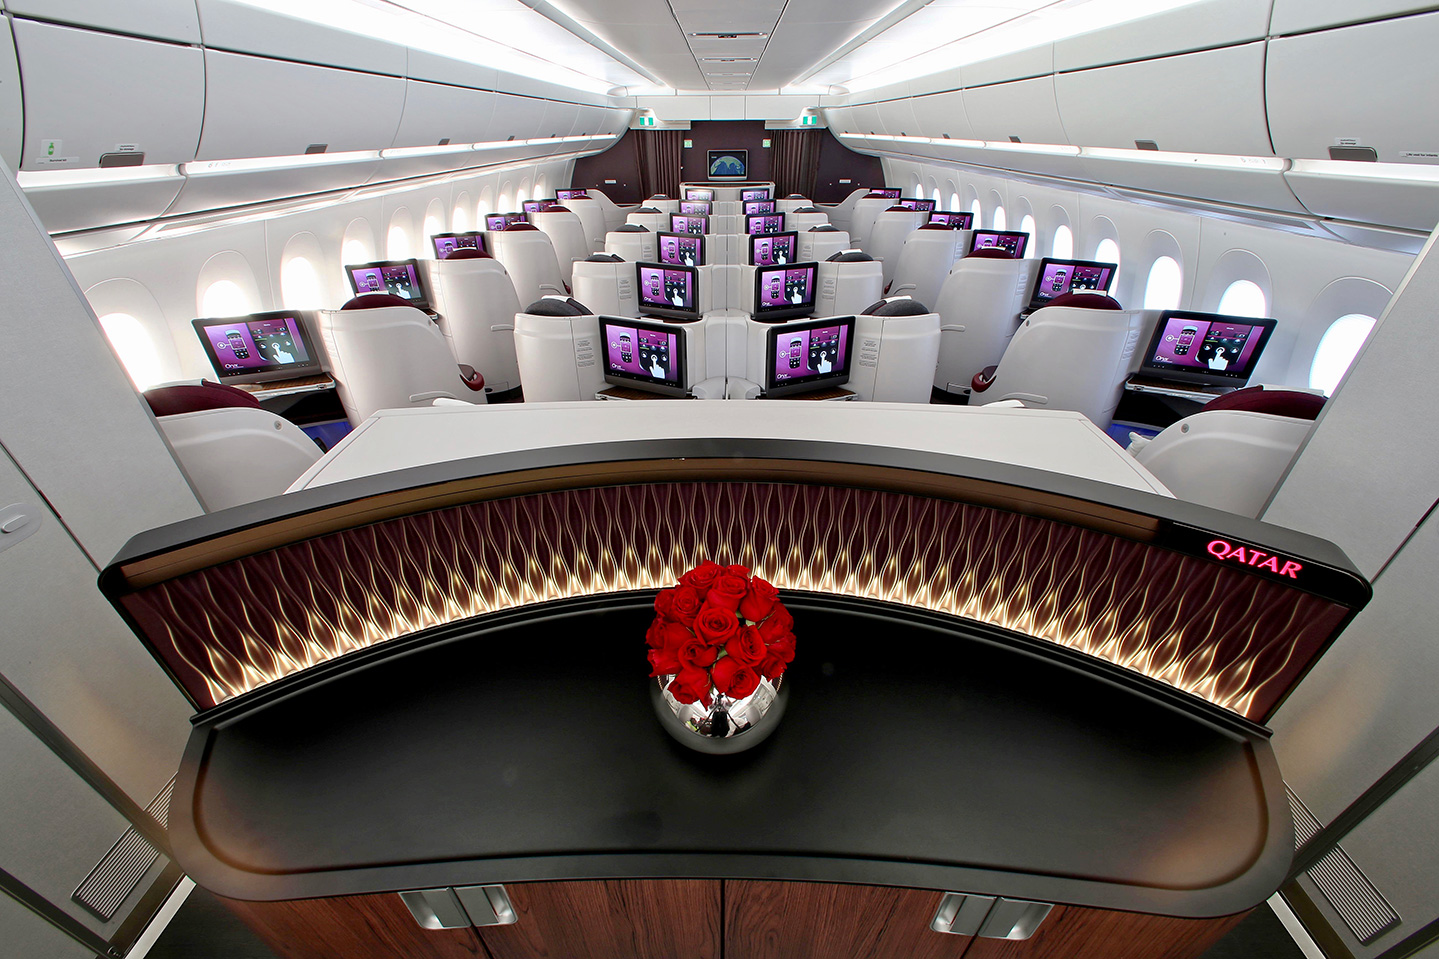 New to Qatar Privilege Club? Earn up to 7,500 miles when you join